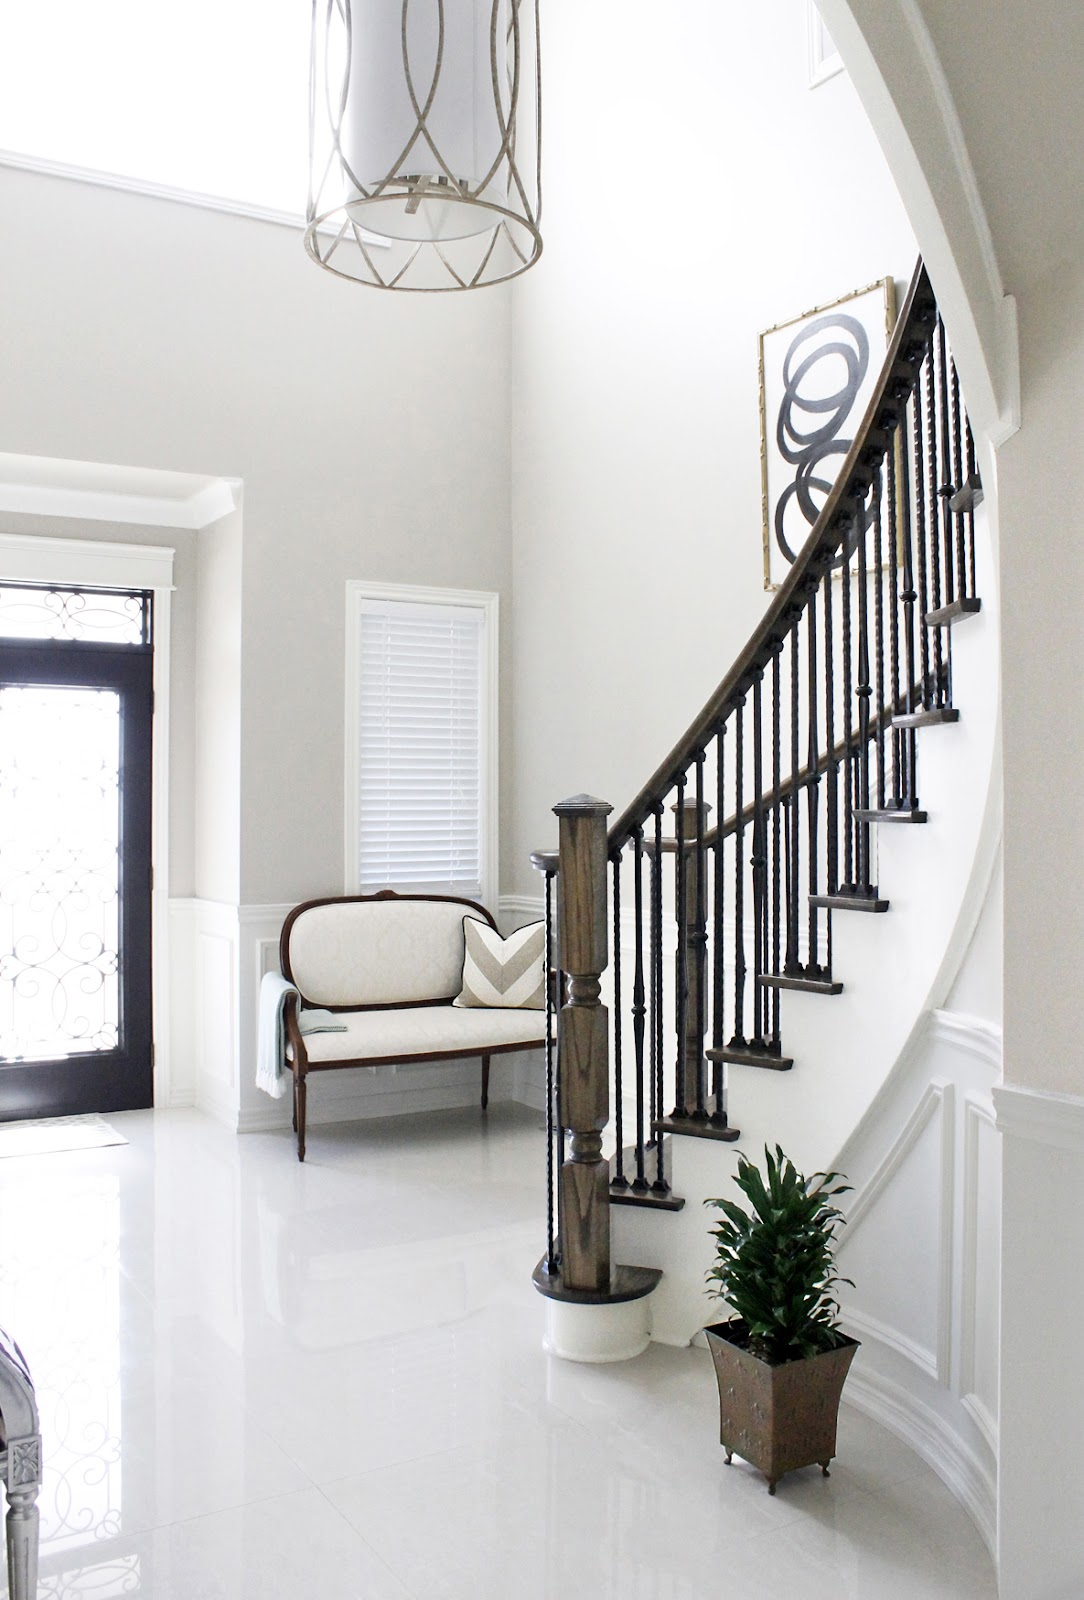 Foyer Staircase Images : Am dolce vita painted staircase reveal